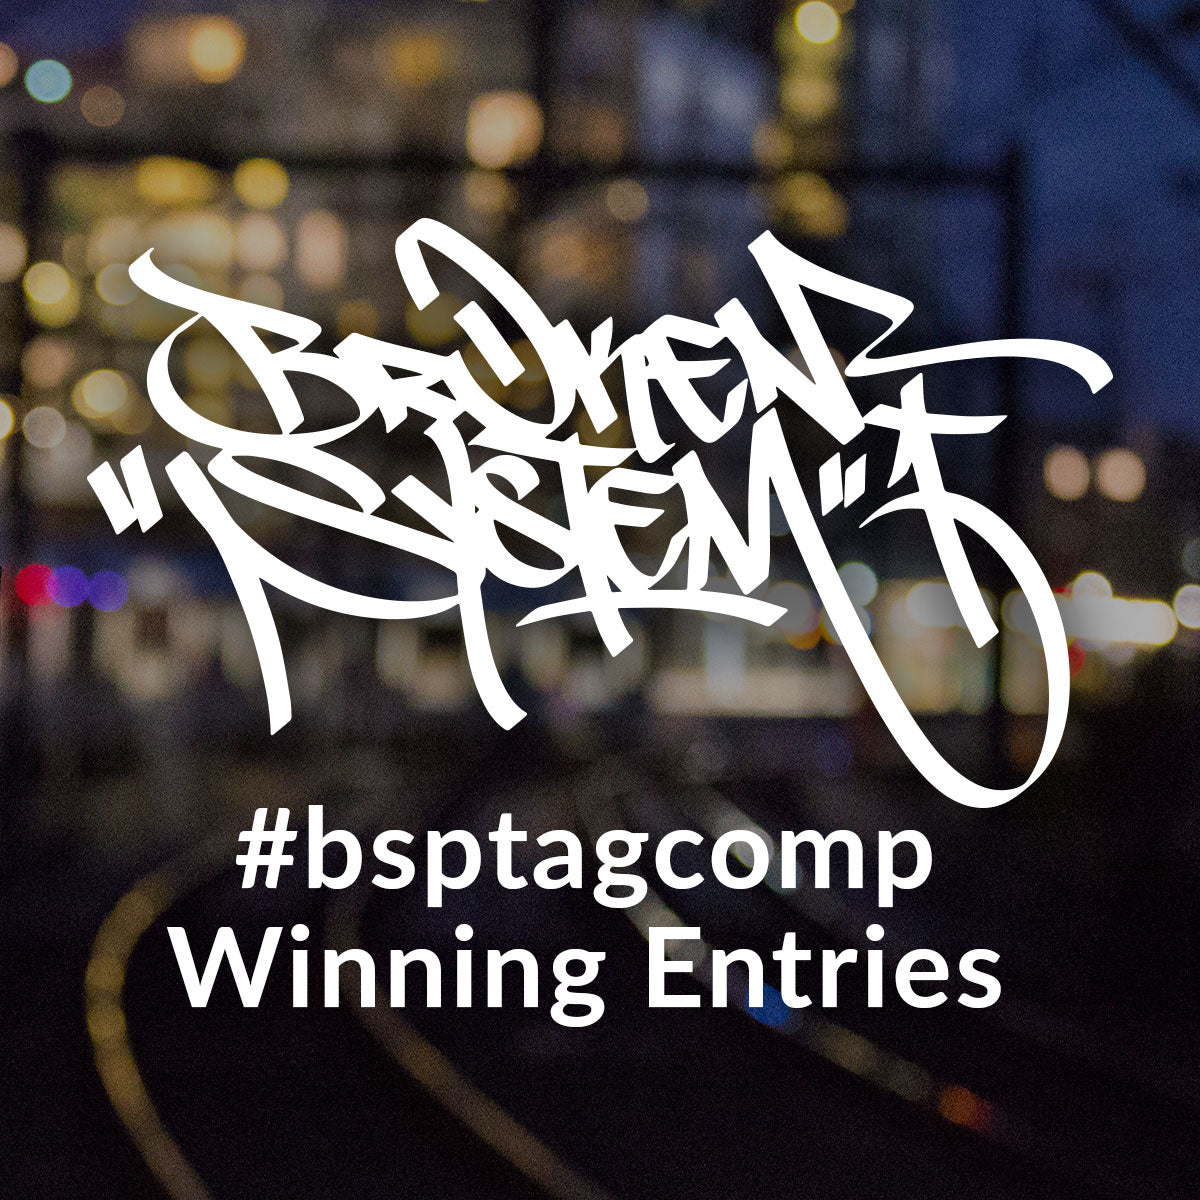 BSP Tag Comp - Winning Entries